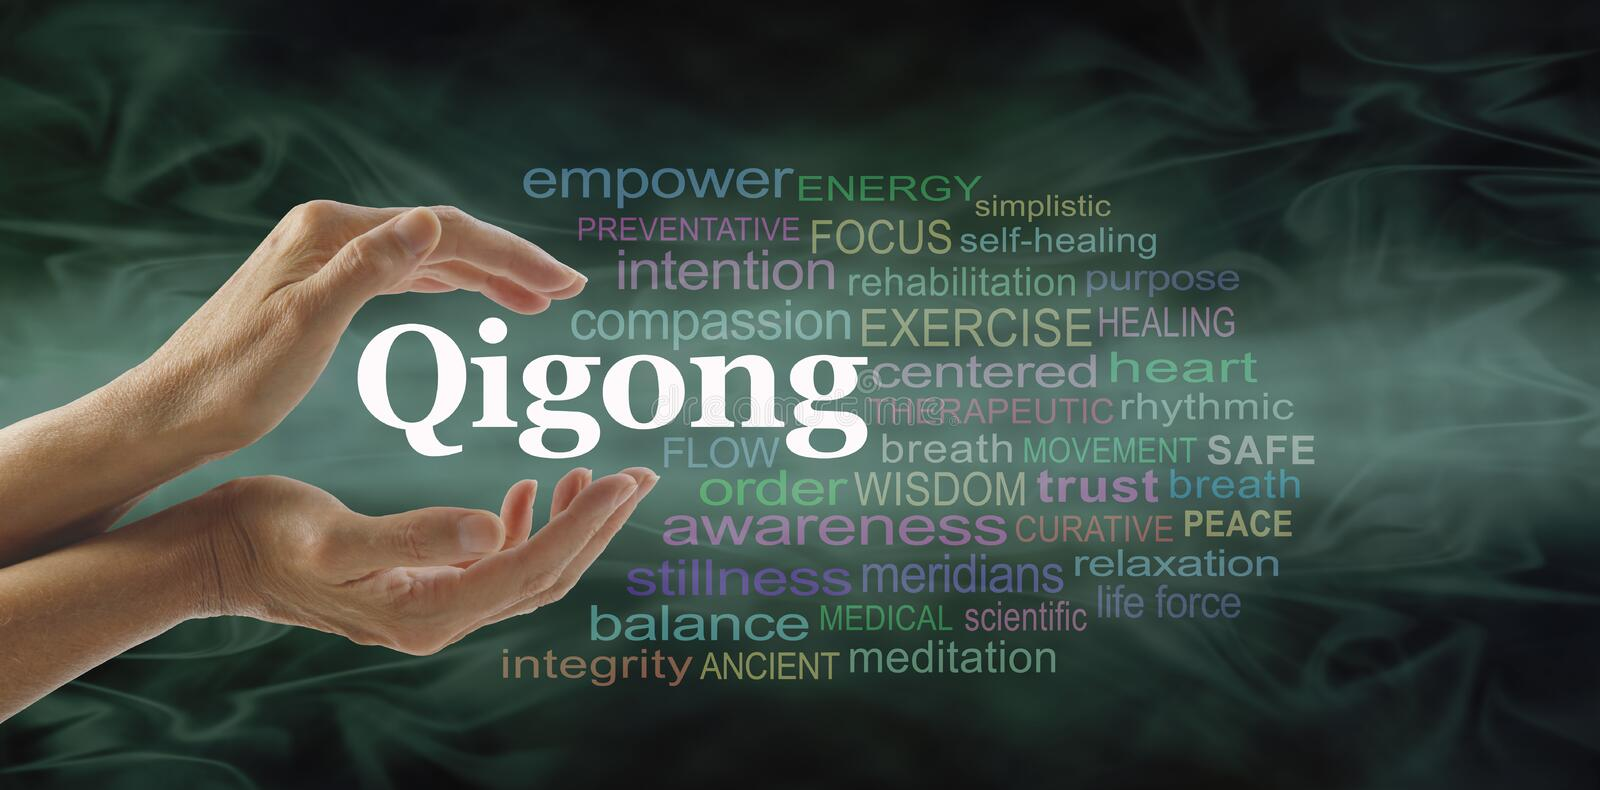 Qigong word cloud and healing hands royalty free stock photo